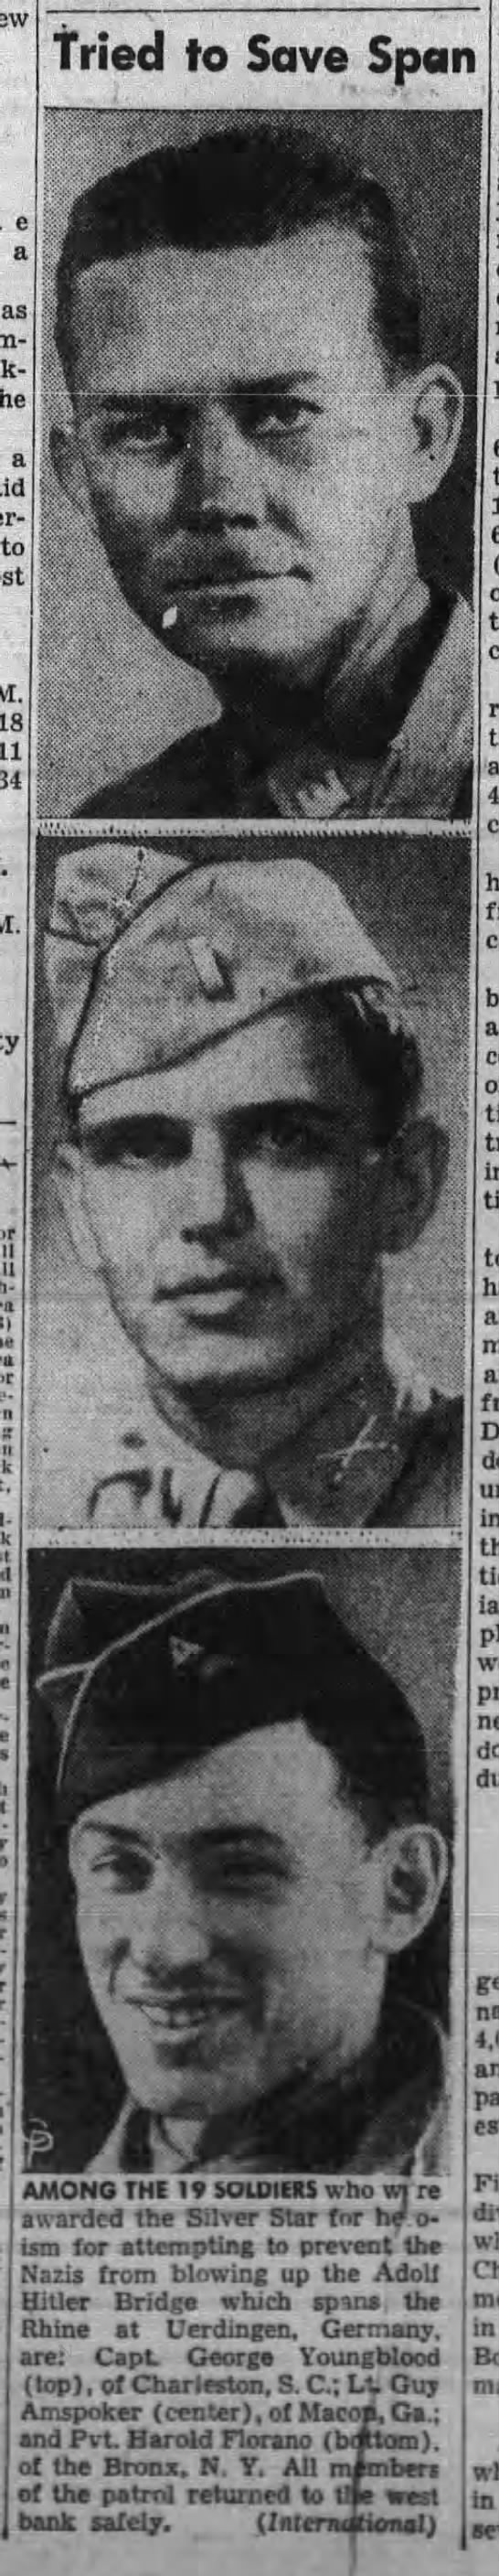 The Daily Record (Long Branch, New Jersey, United States of America) · 10 Mar 1945